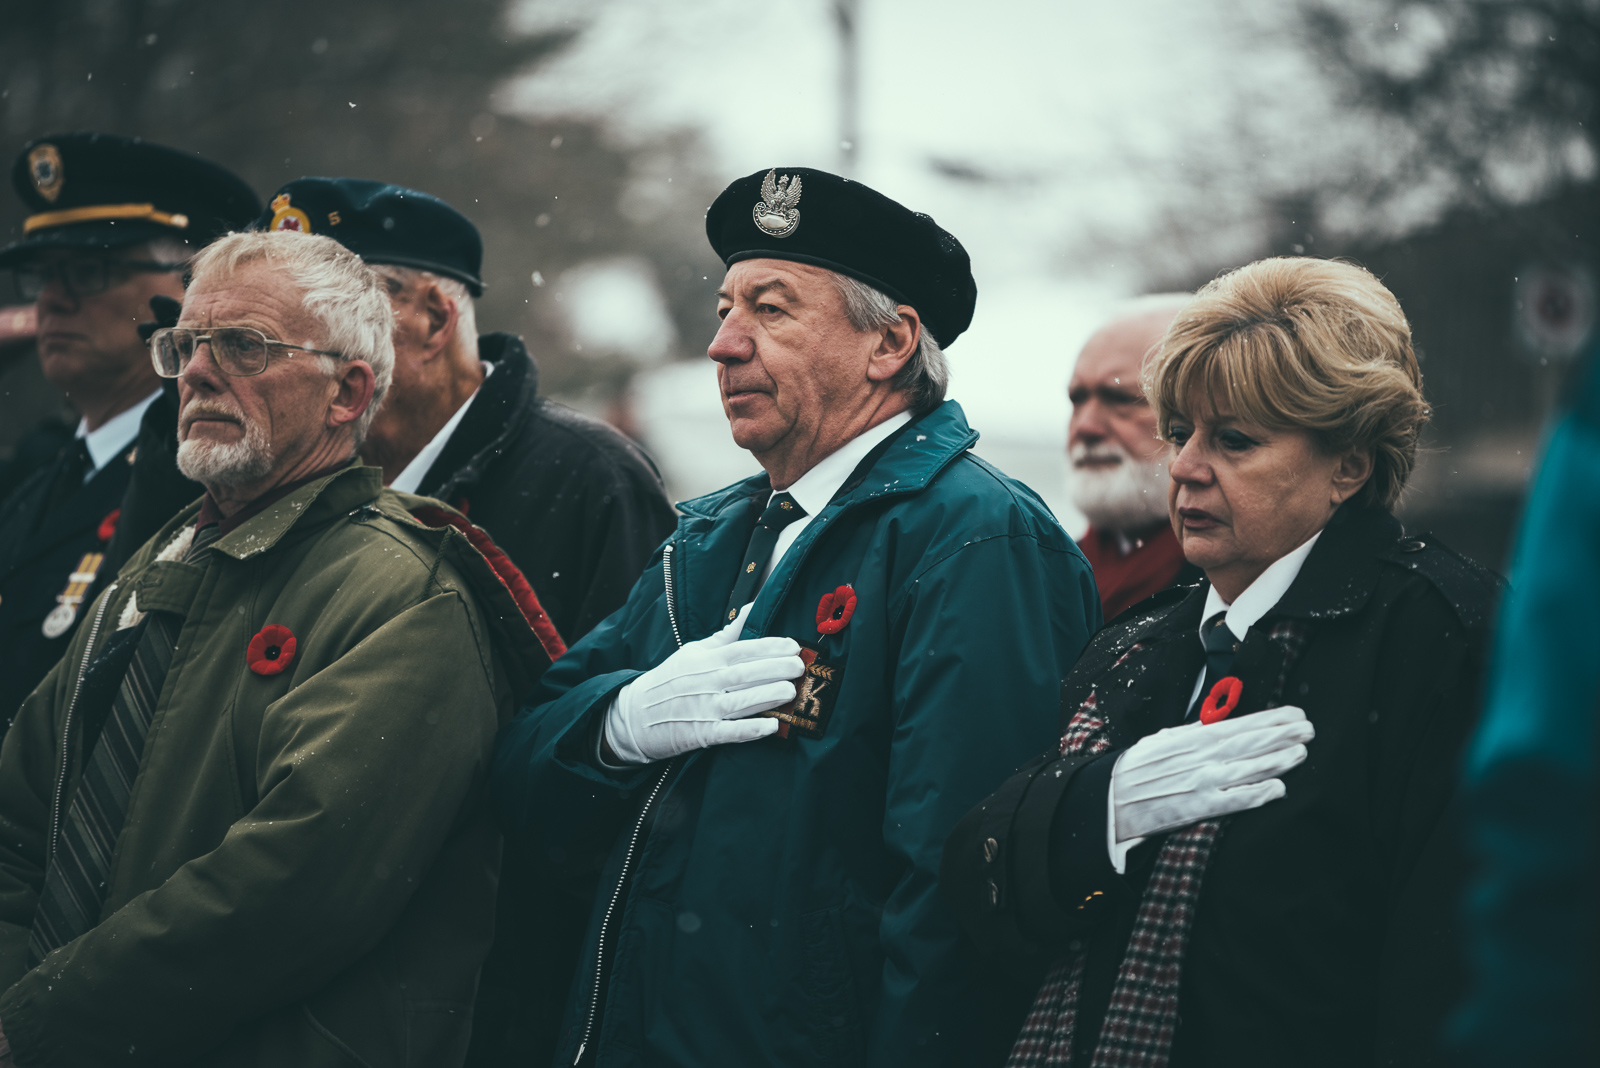 remembrance-day-2018-blog-71.jpg